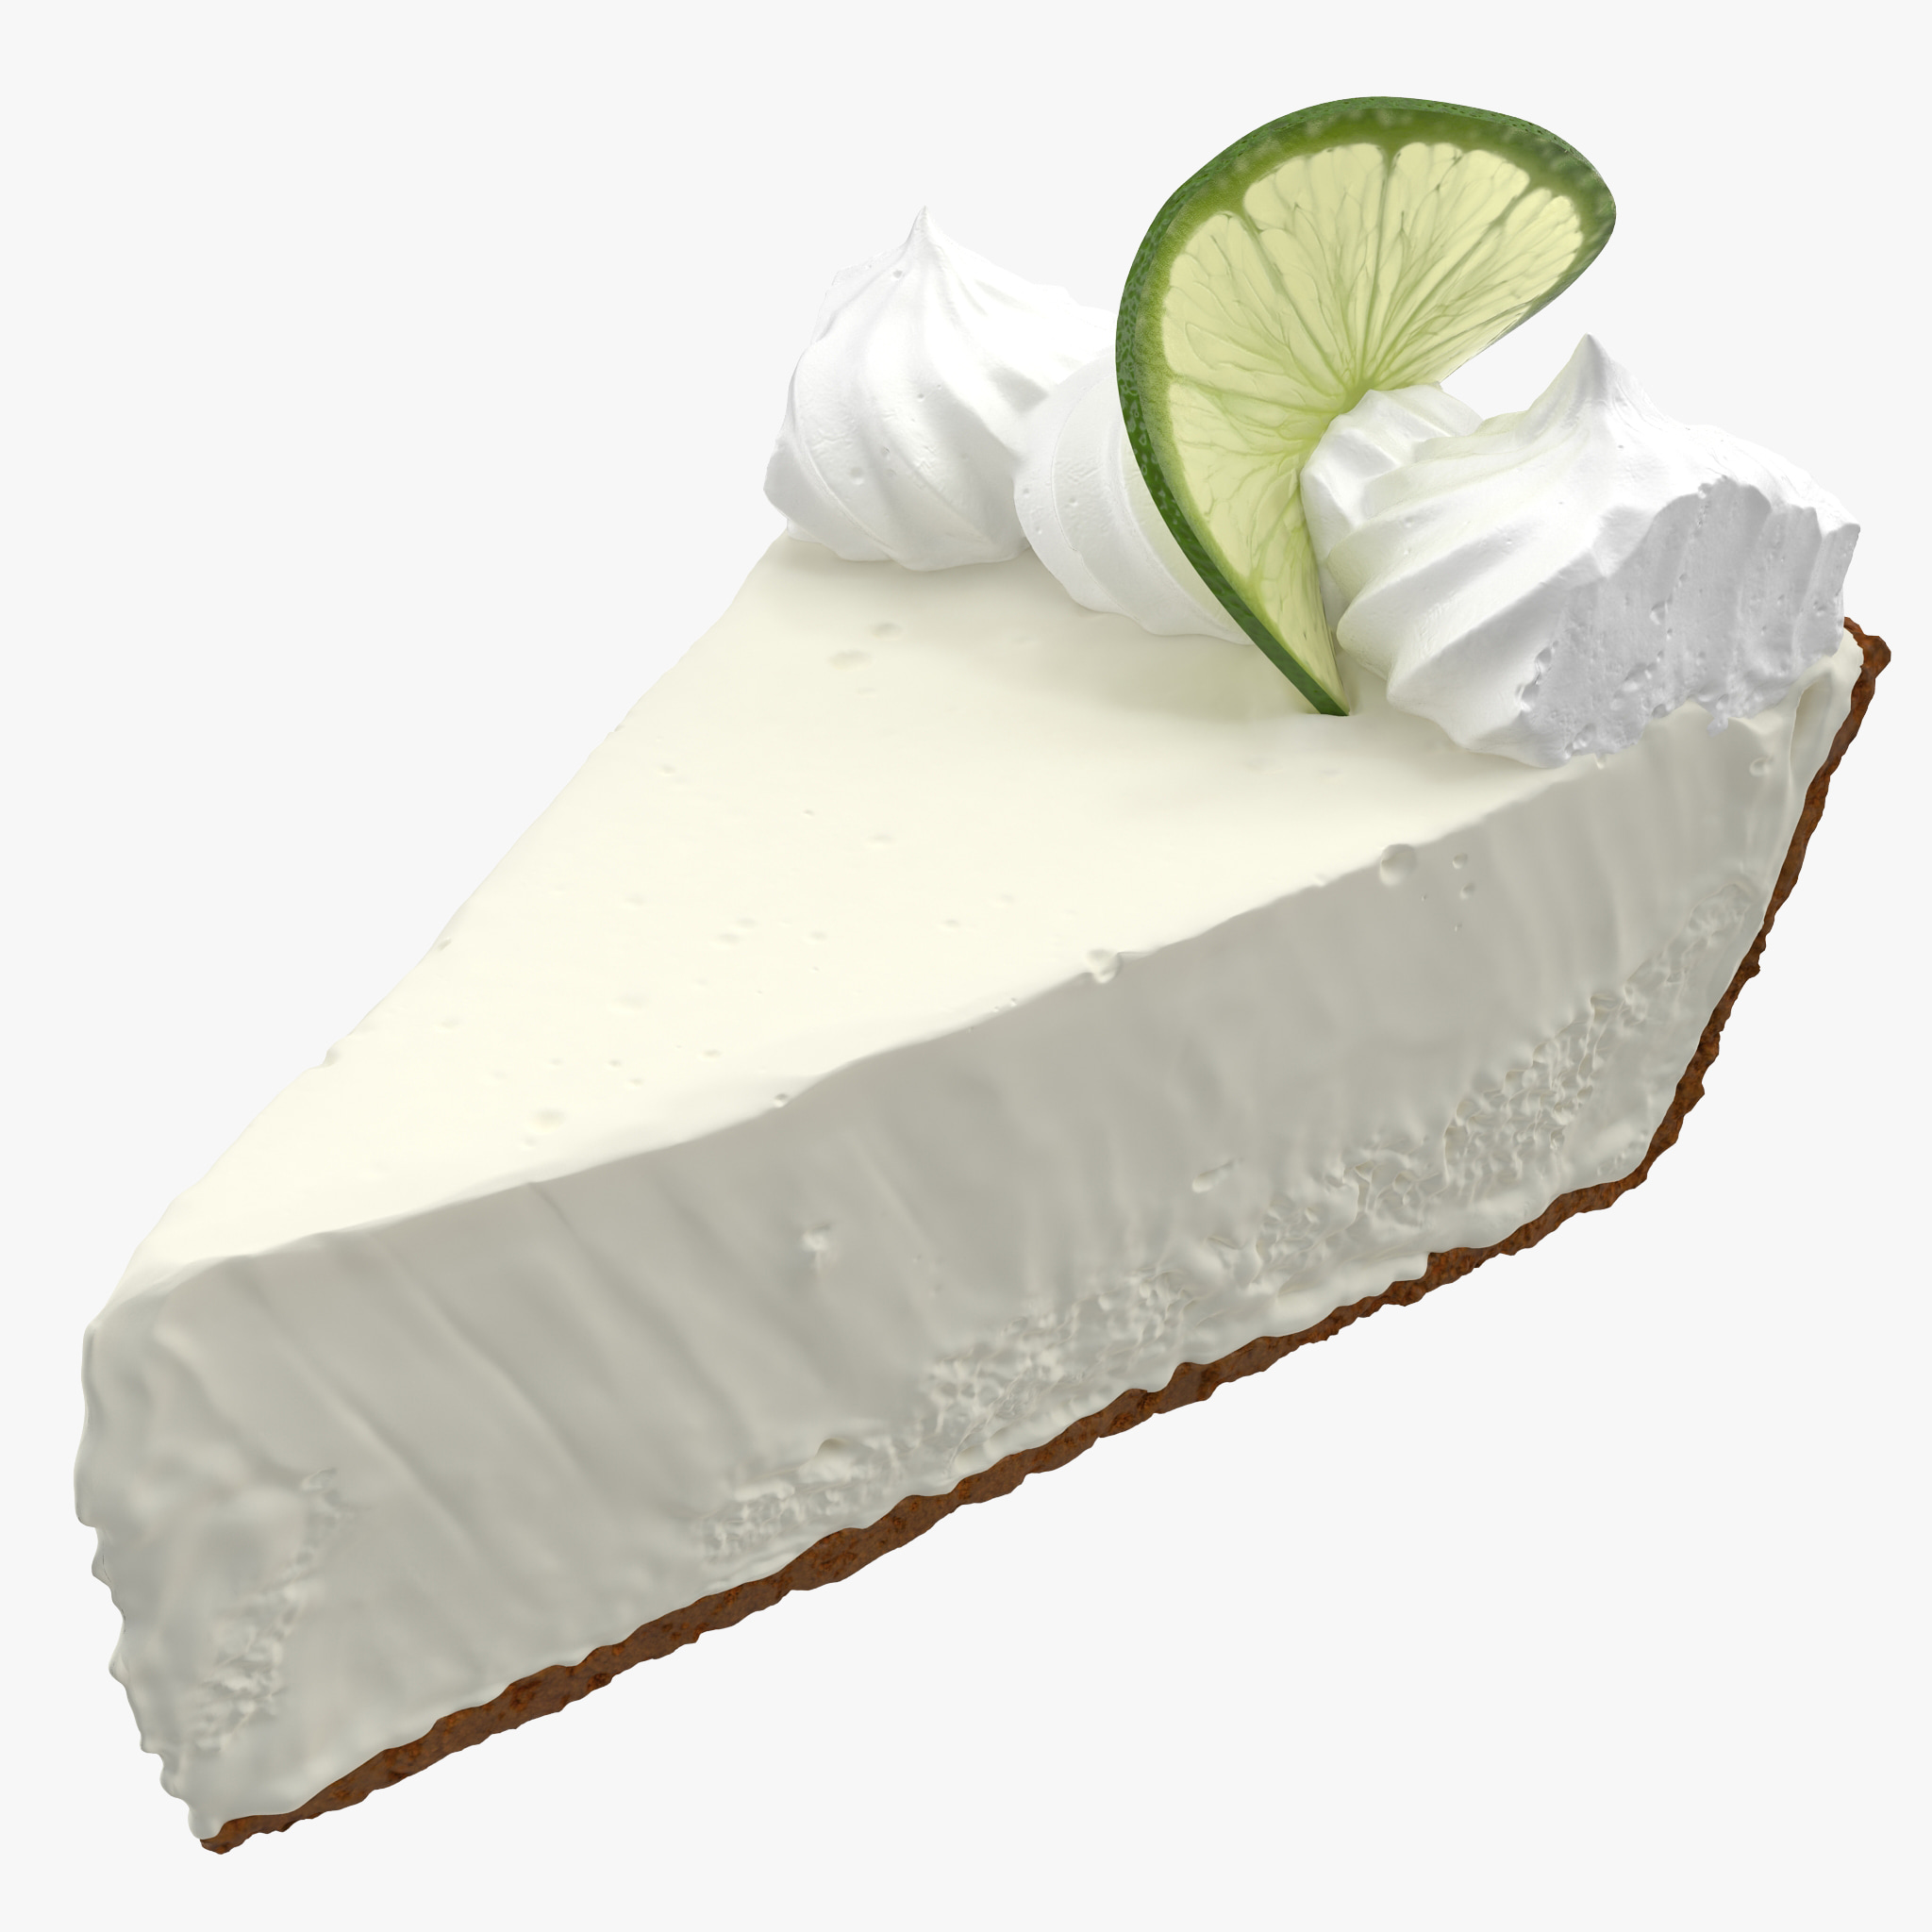 3d key lime pie model